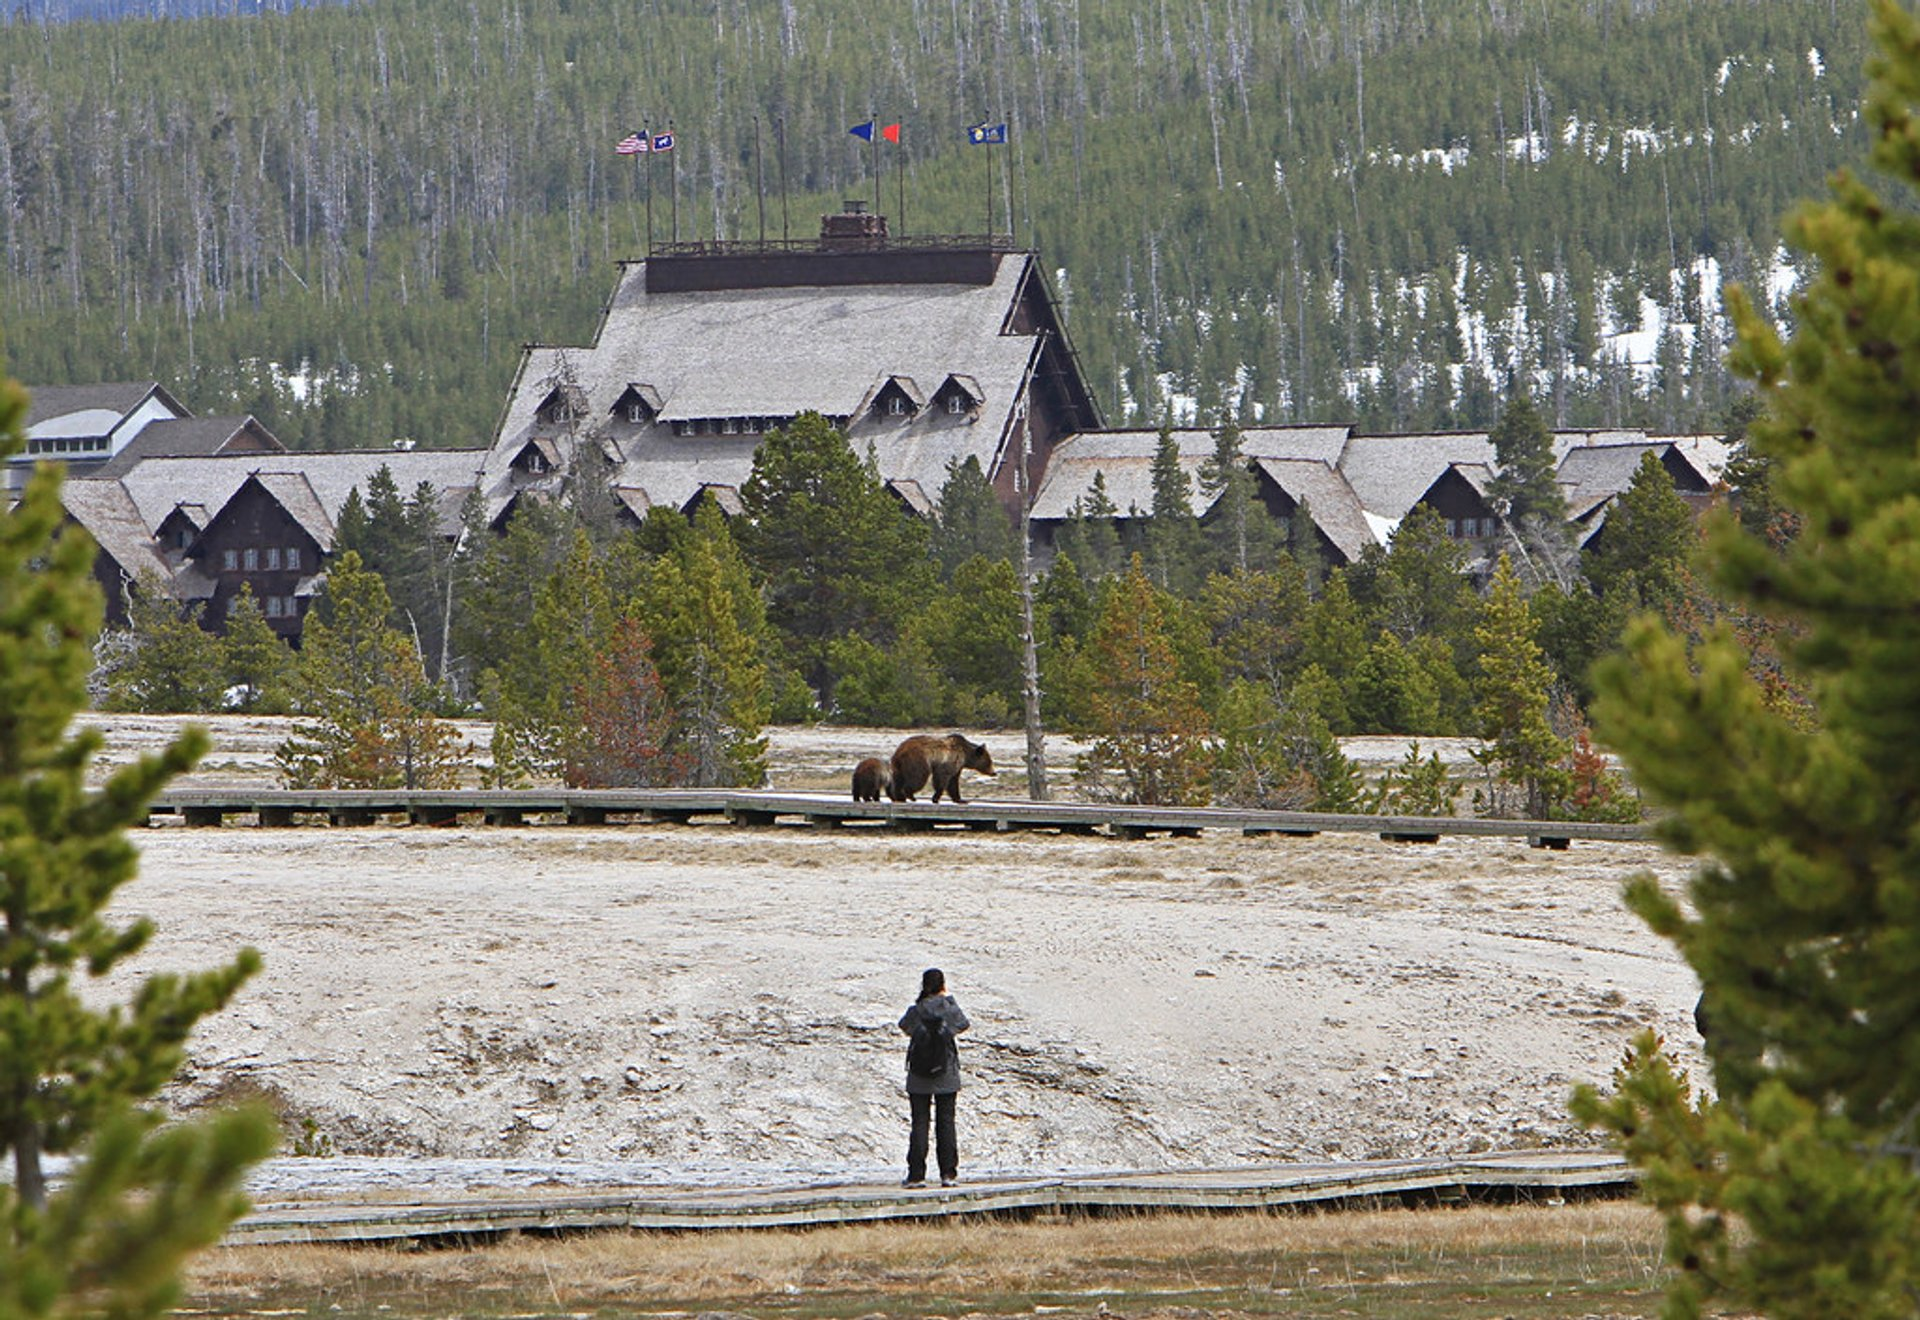 Grizzly sow and yearling on boardwalk in Upper Geyser Basin 2019